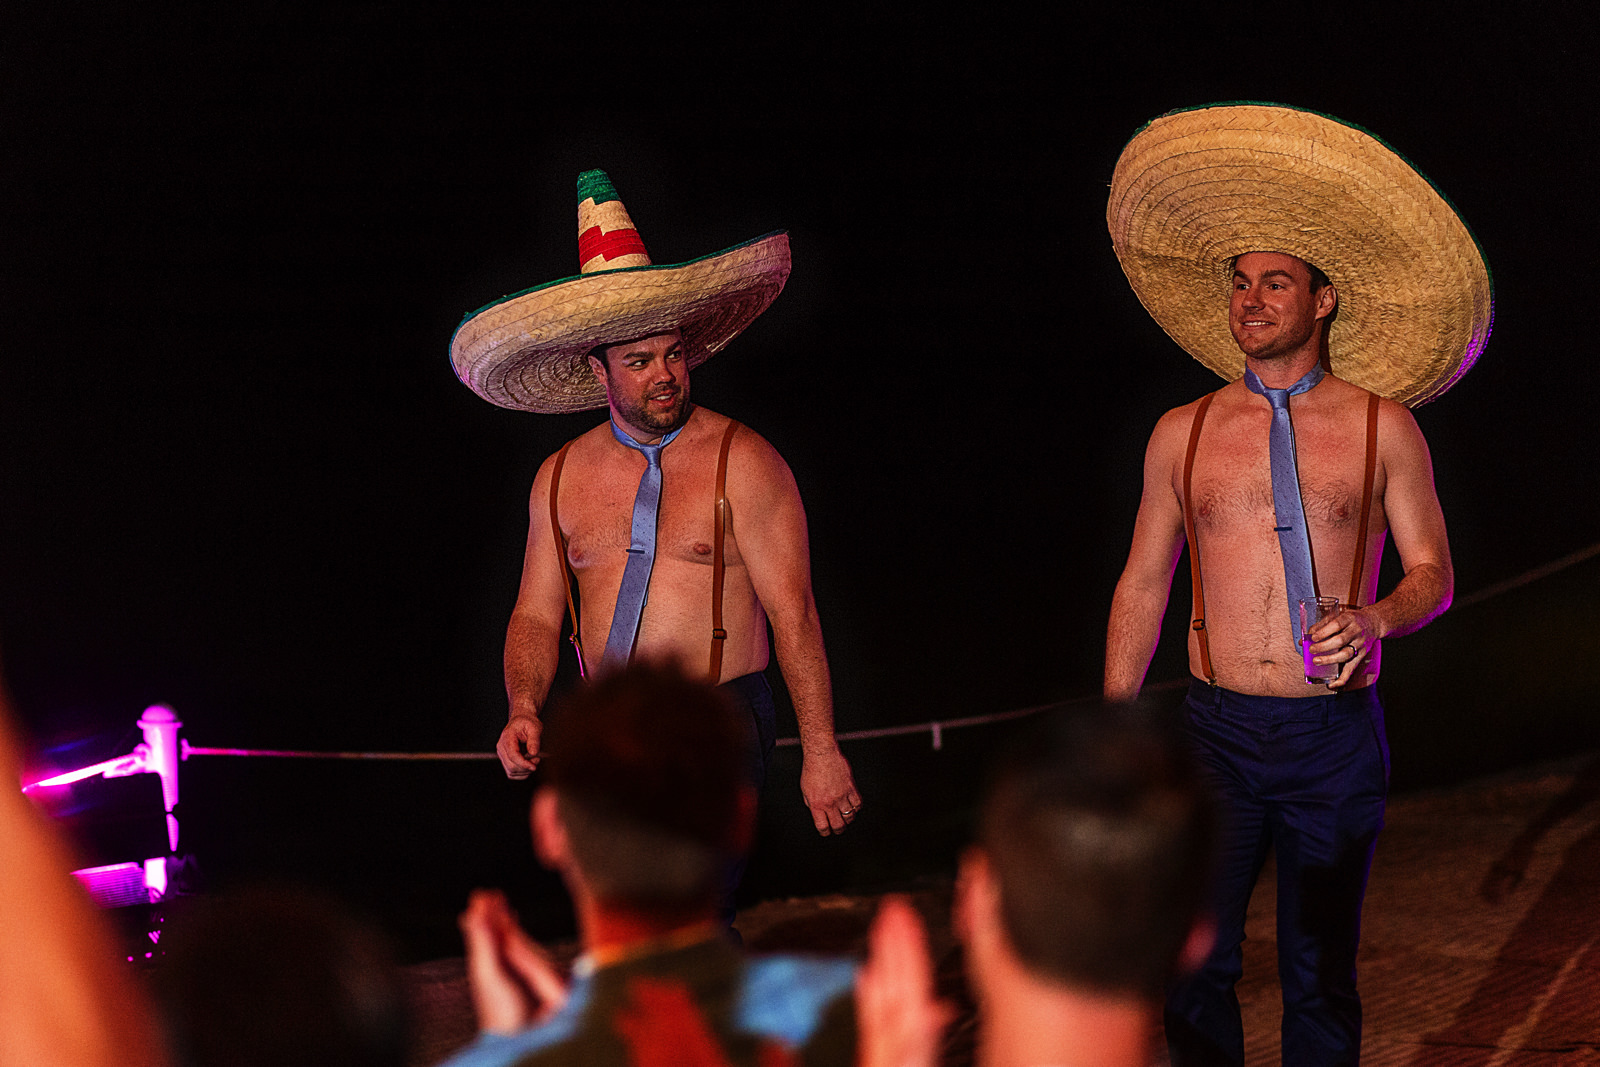 Groomsmen with no shirt entering into the dinner area with mexican sombreros